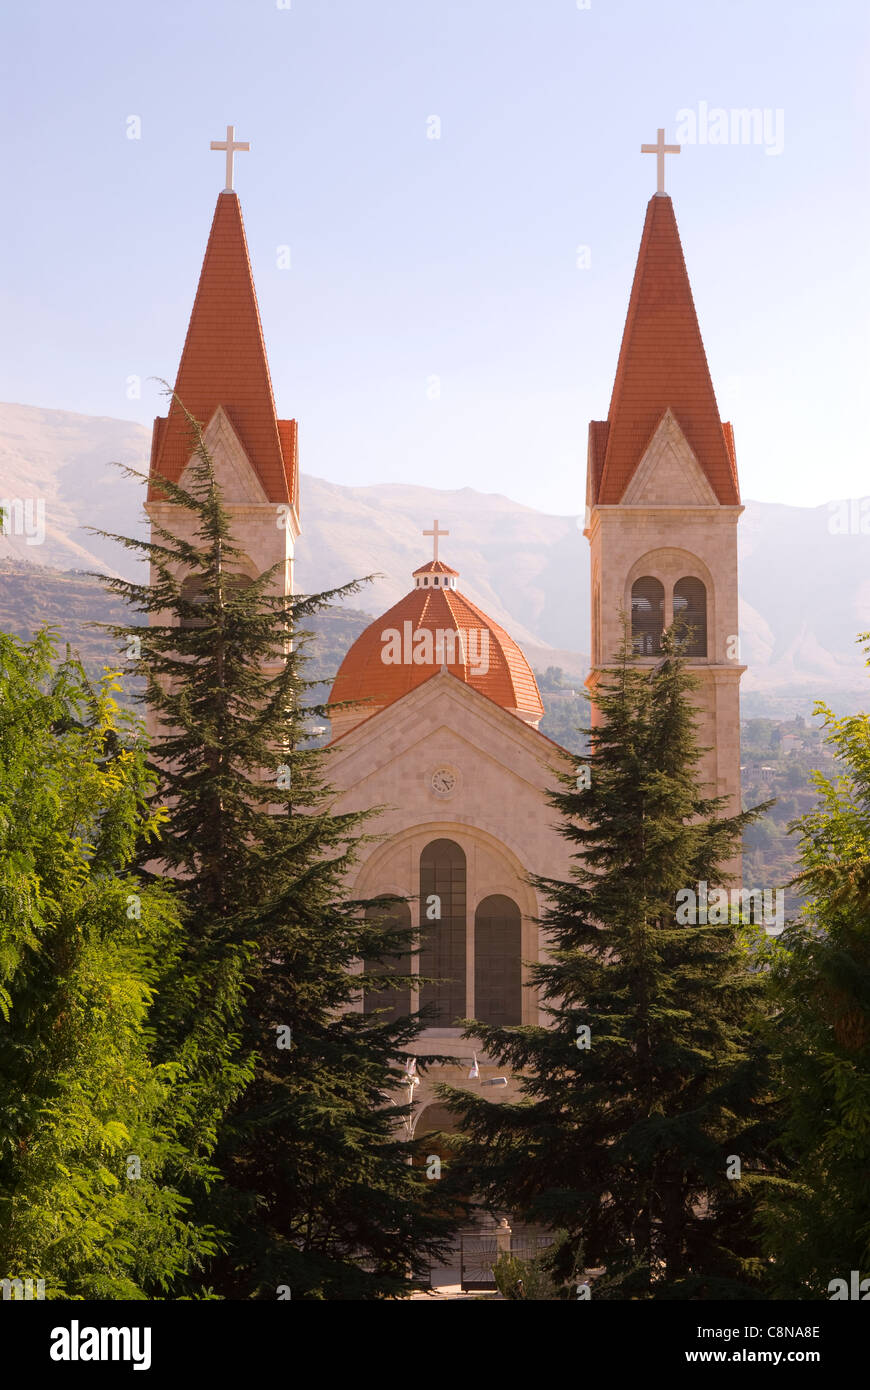 St Saba Church, which dominates the Christian town of Bcharre, northern Lebanon. - Stock Image